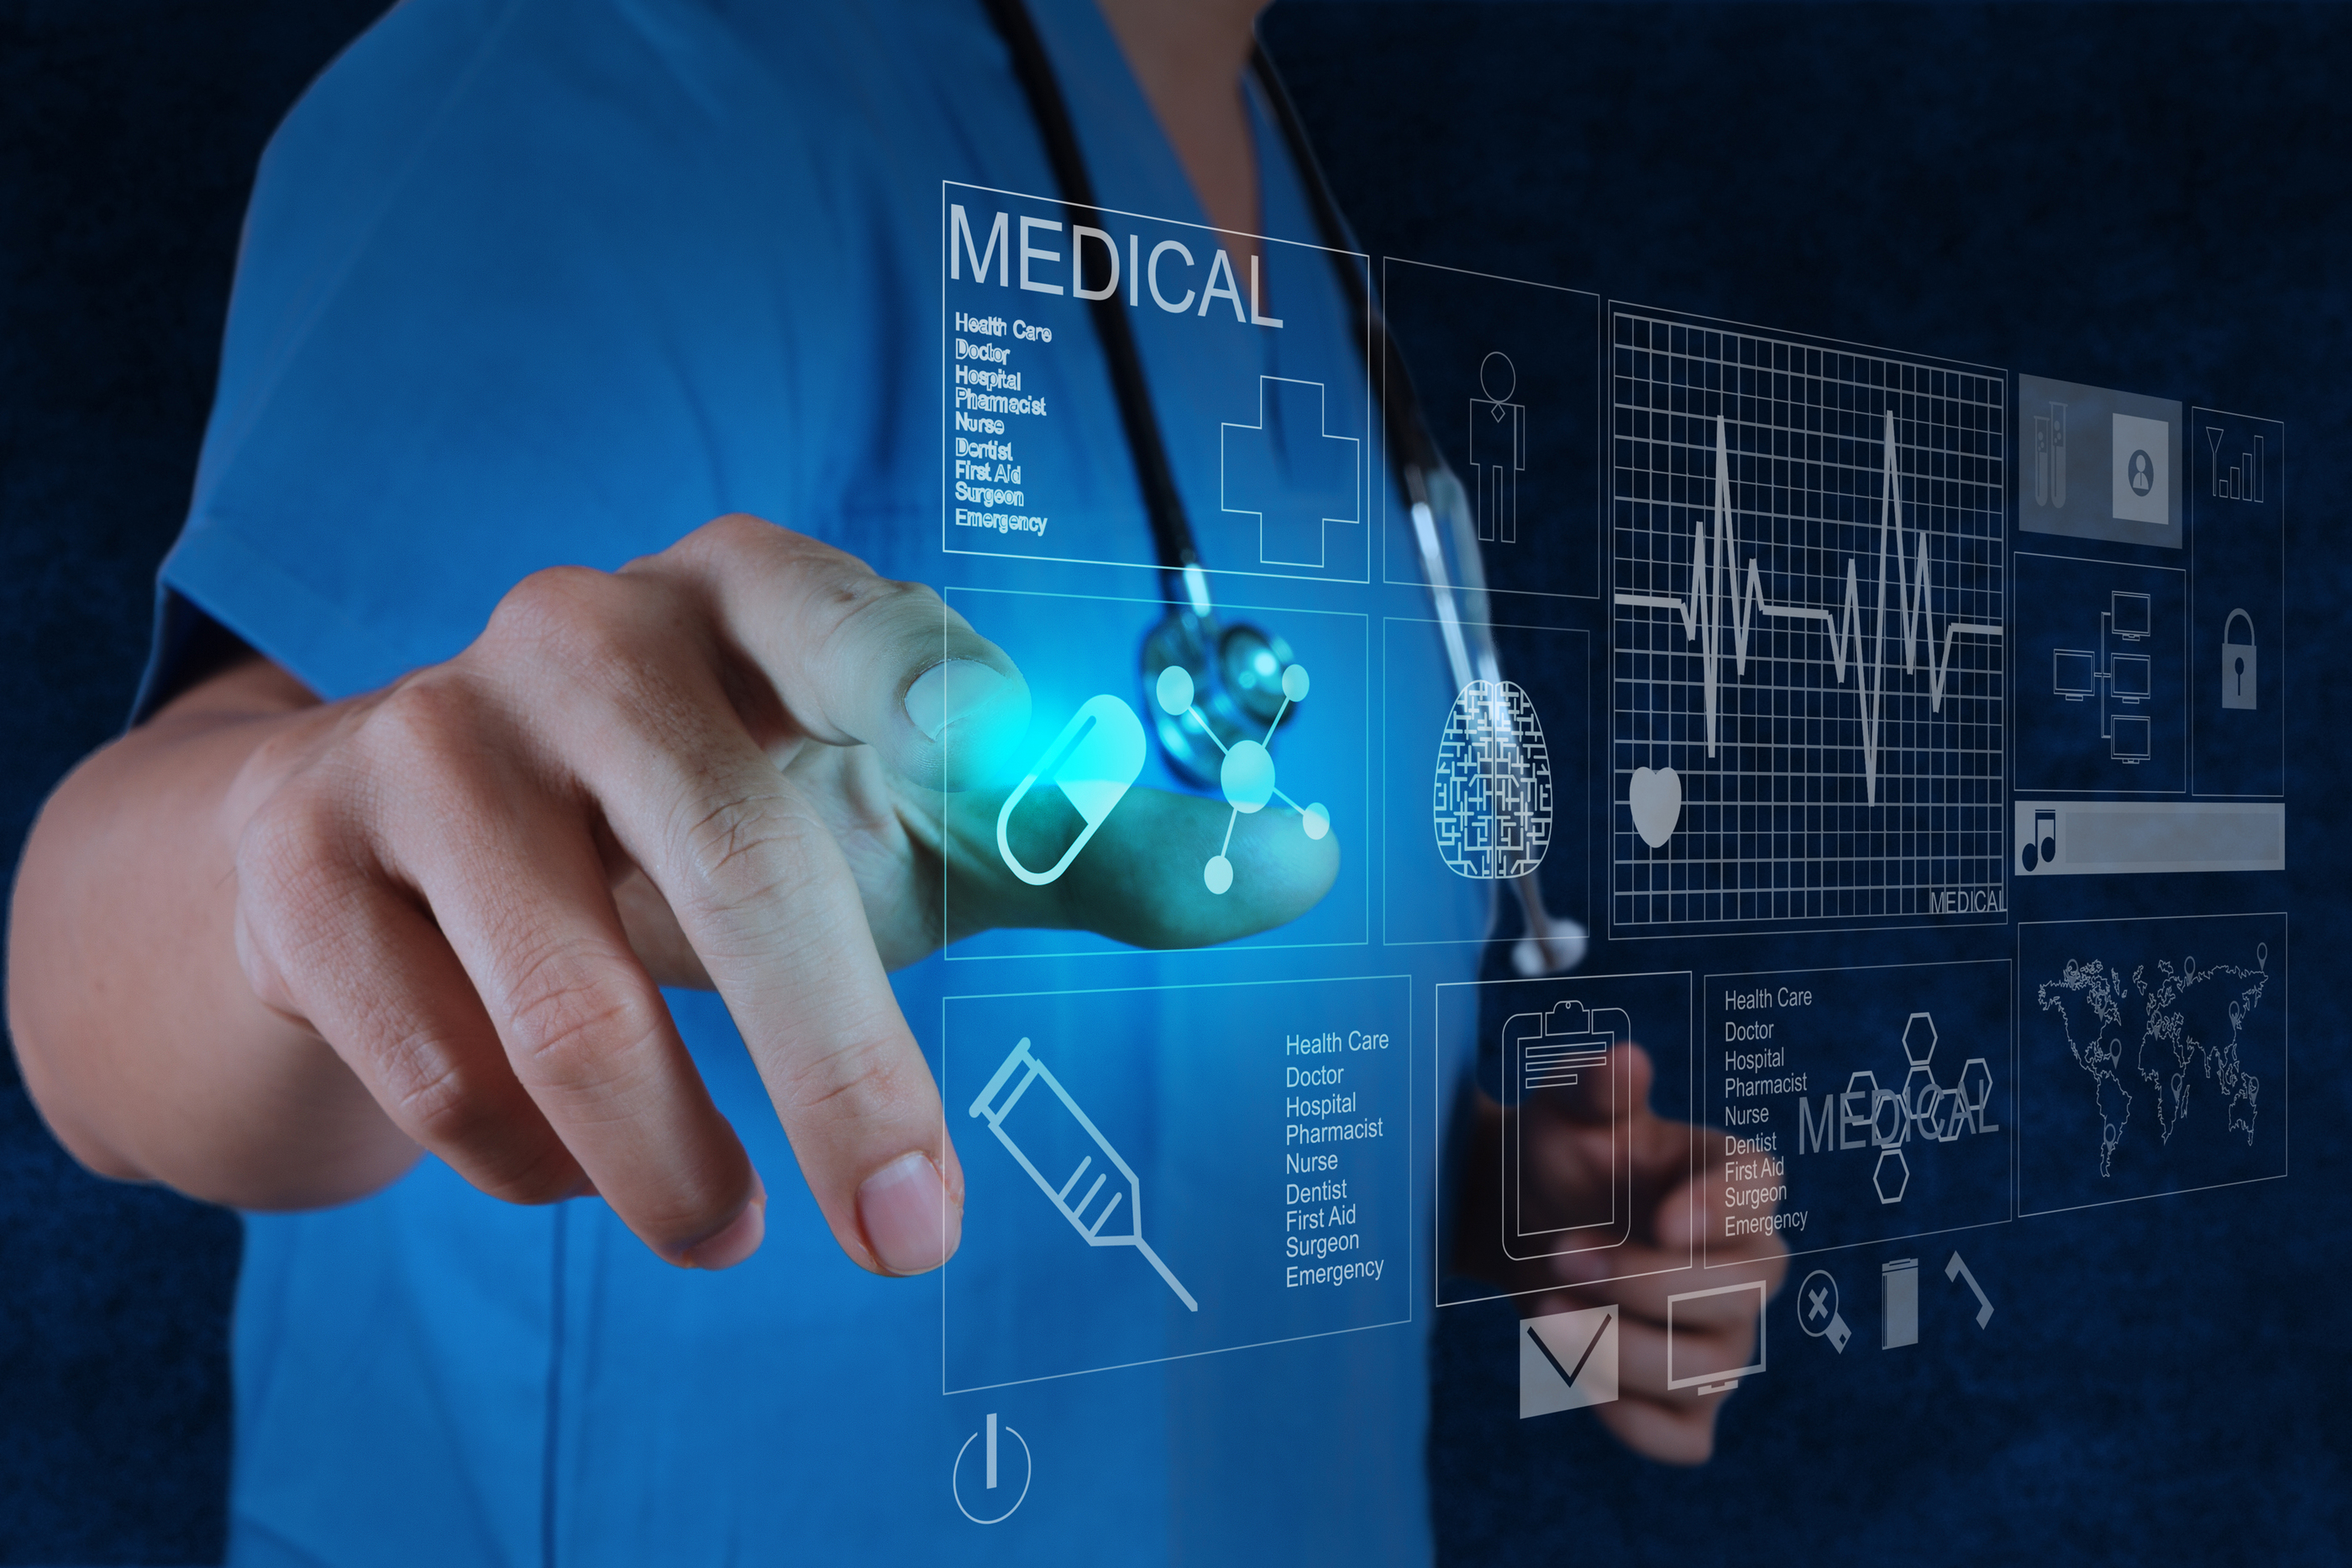 internet and technology innovation changes health Get the latest technology news, articles and op-eds a look at the innovations and technologies that are shaping the future and changing the world.